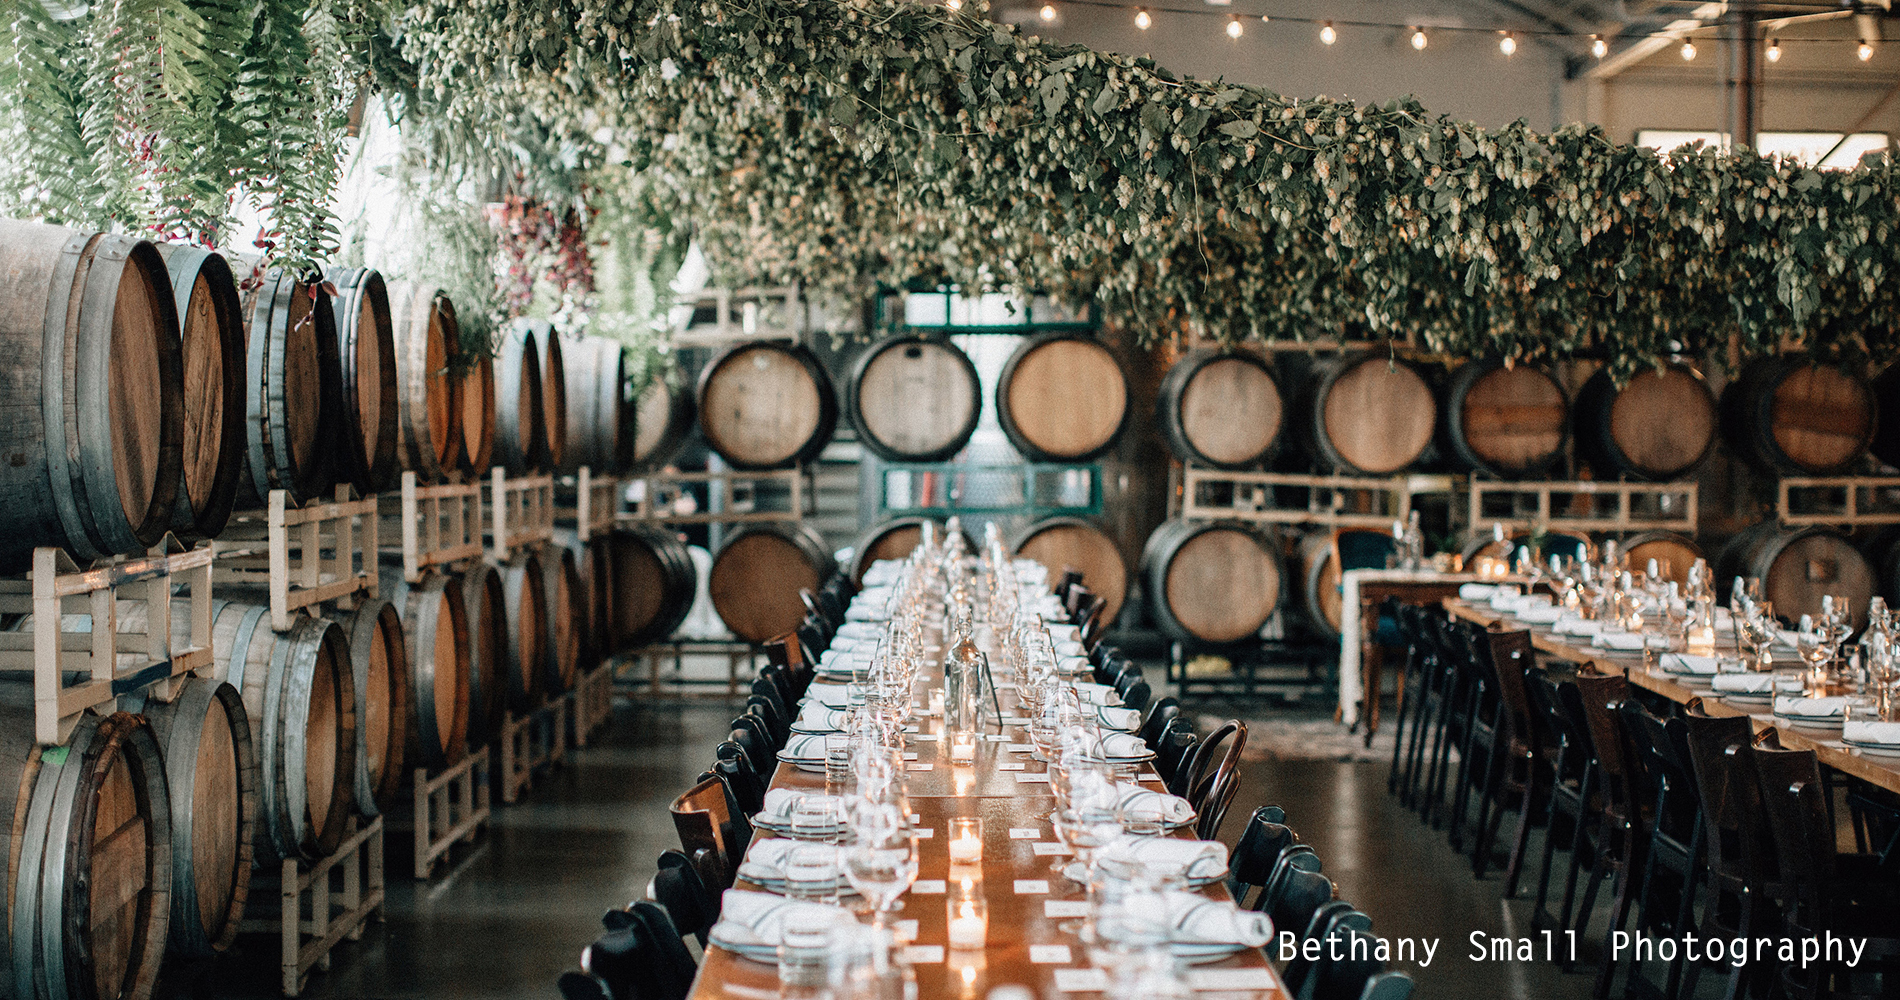 Bethany_Small_Photography_Weddings_Wedding_Events_Design_Wedding_Cake_Corporate_Business_Meeting_Sales_Training_Event_Marketing_Oregon_Portland_Adventure_Winery_Taproom_Event-Space_Dinner_Party_Restaurant